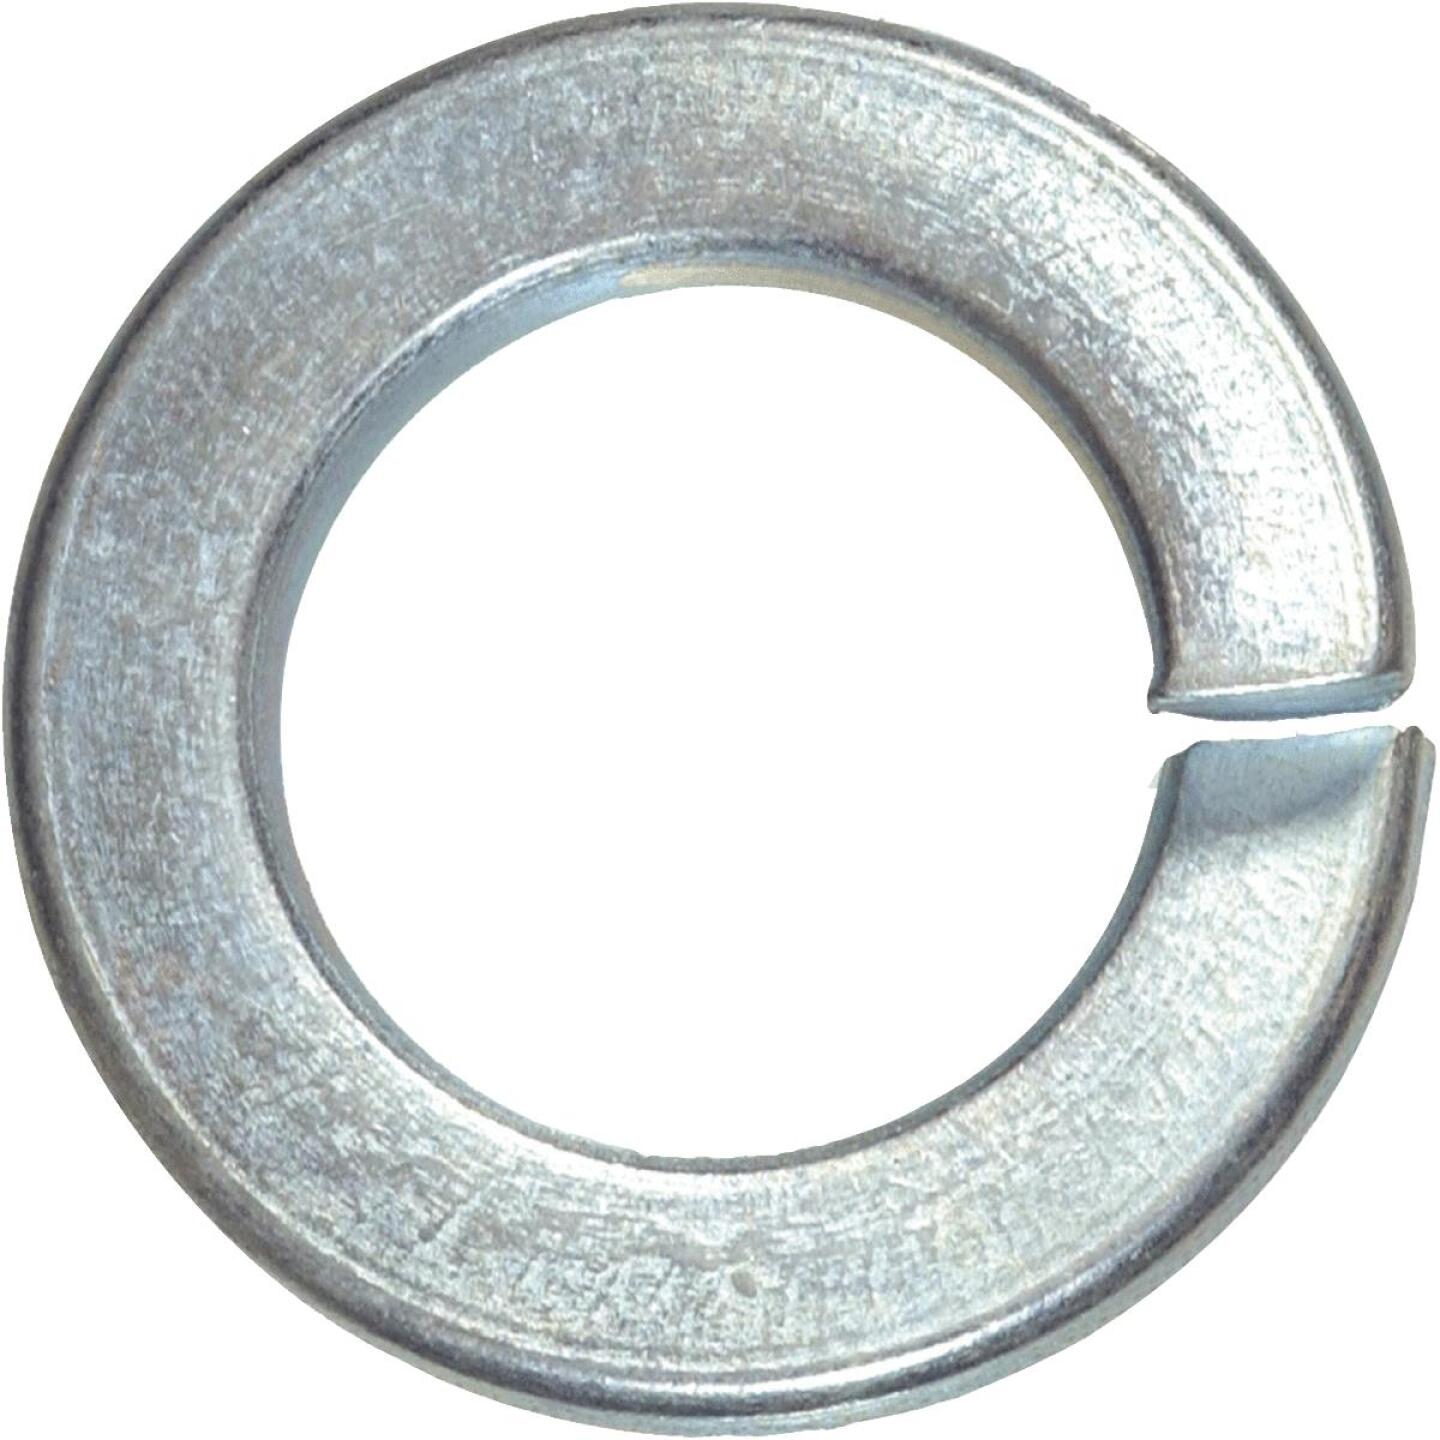 Hillman #8 Steel Zinc Plated Lock Washer (30 Ct.) Image 1